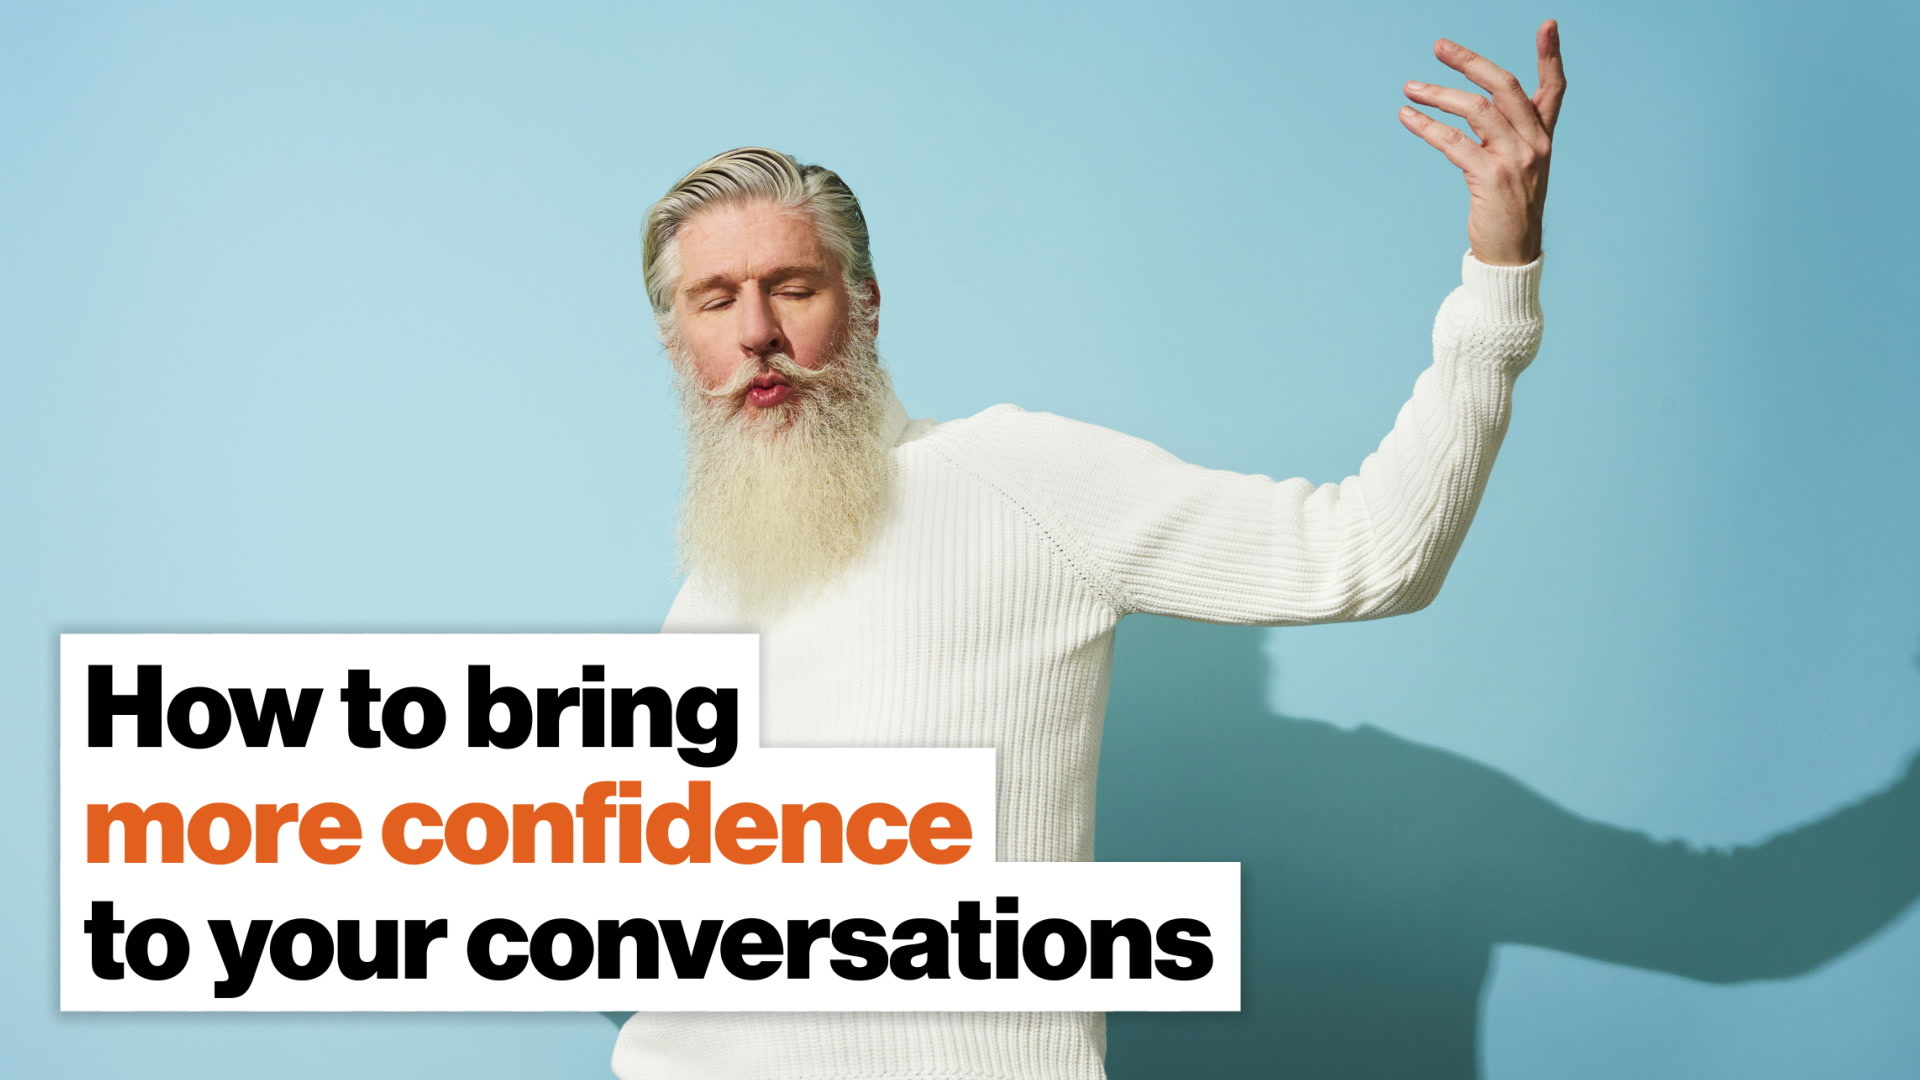 How to bring more confidence to your conversations